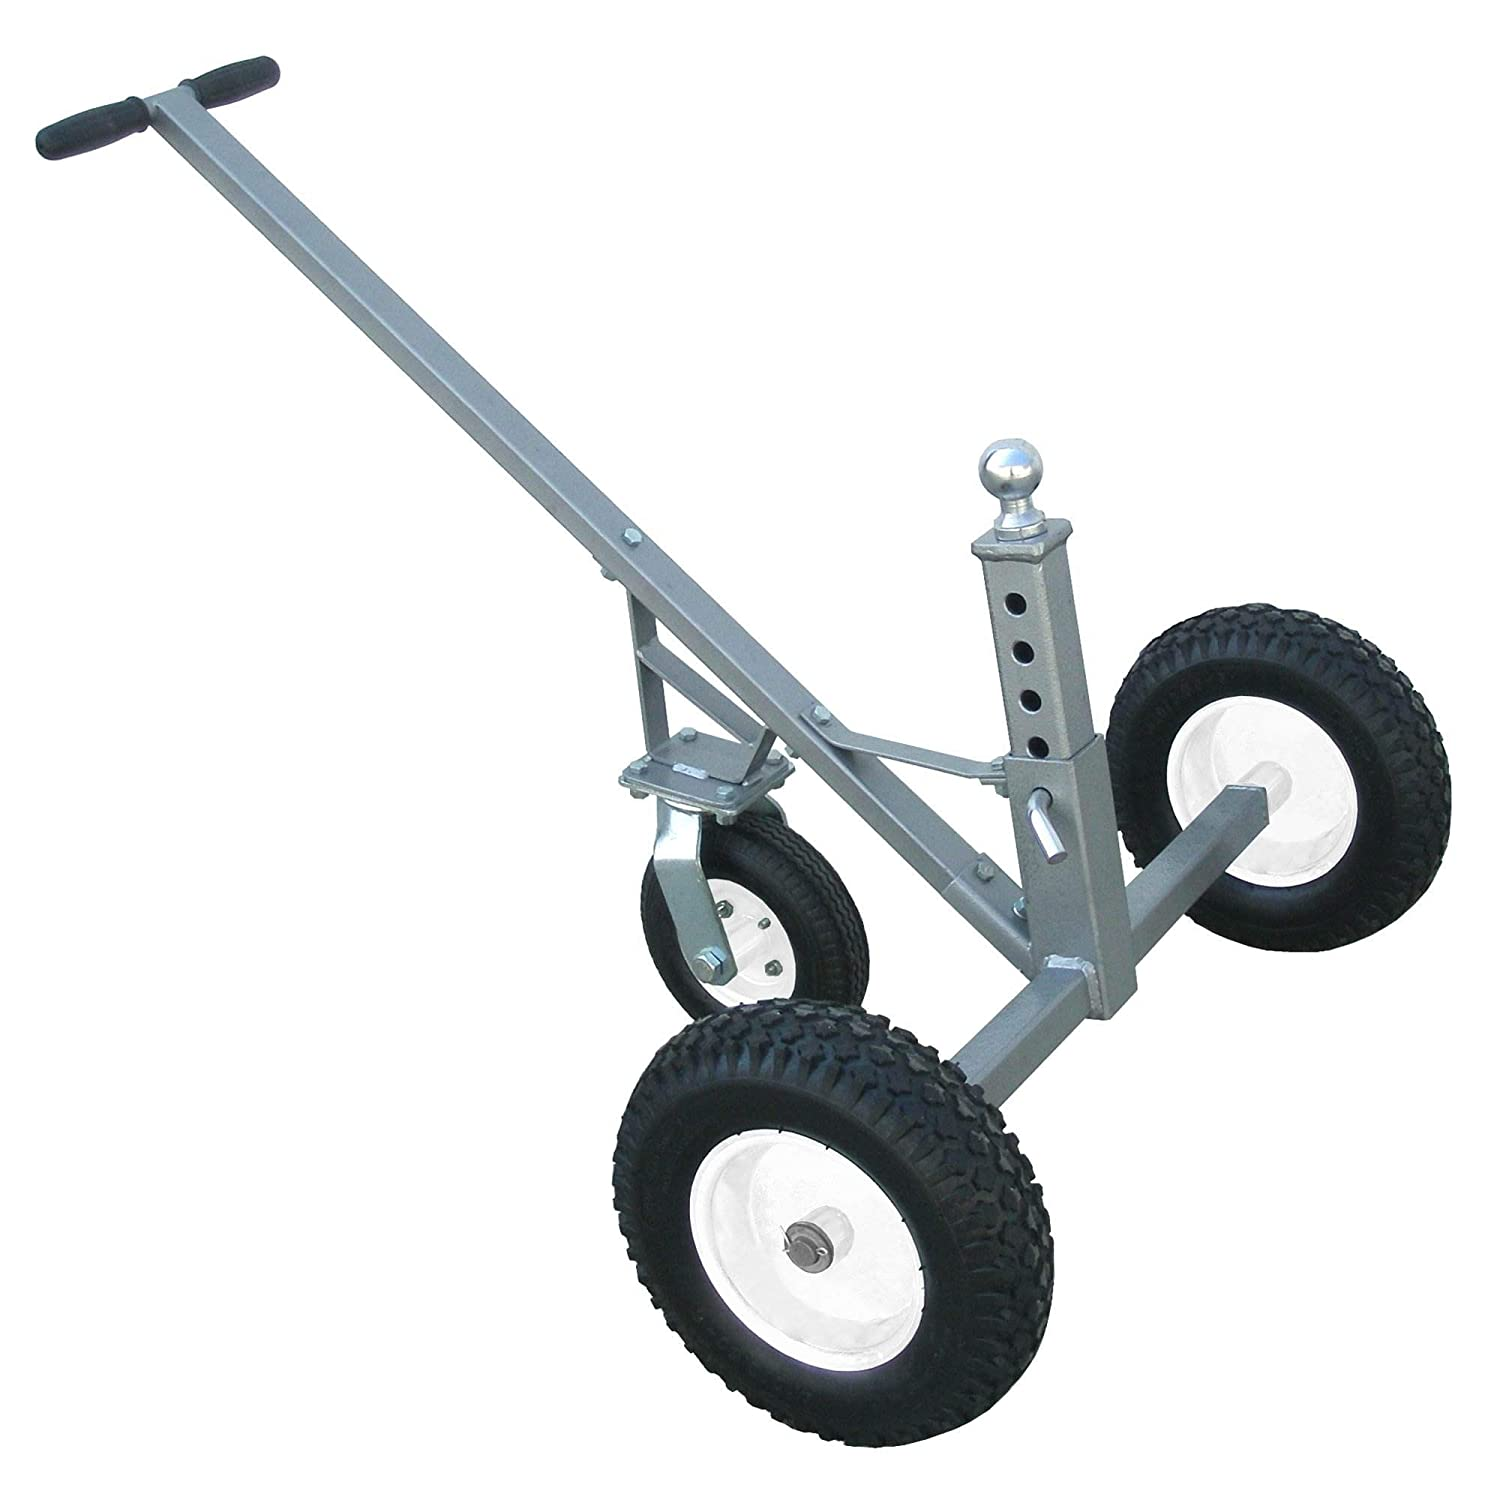 Tow Tuff Adjustable Trailer Dolly}